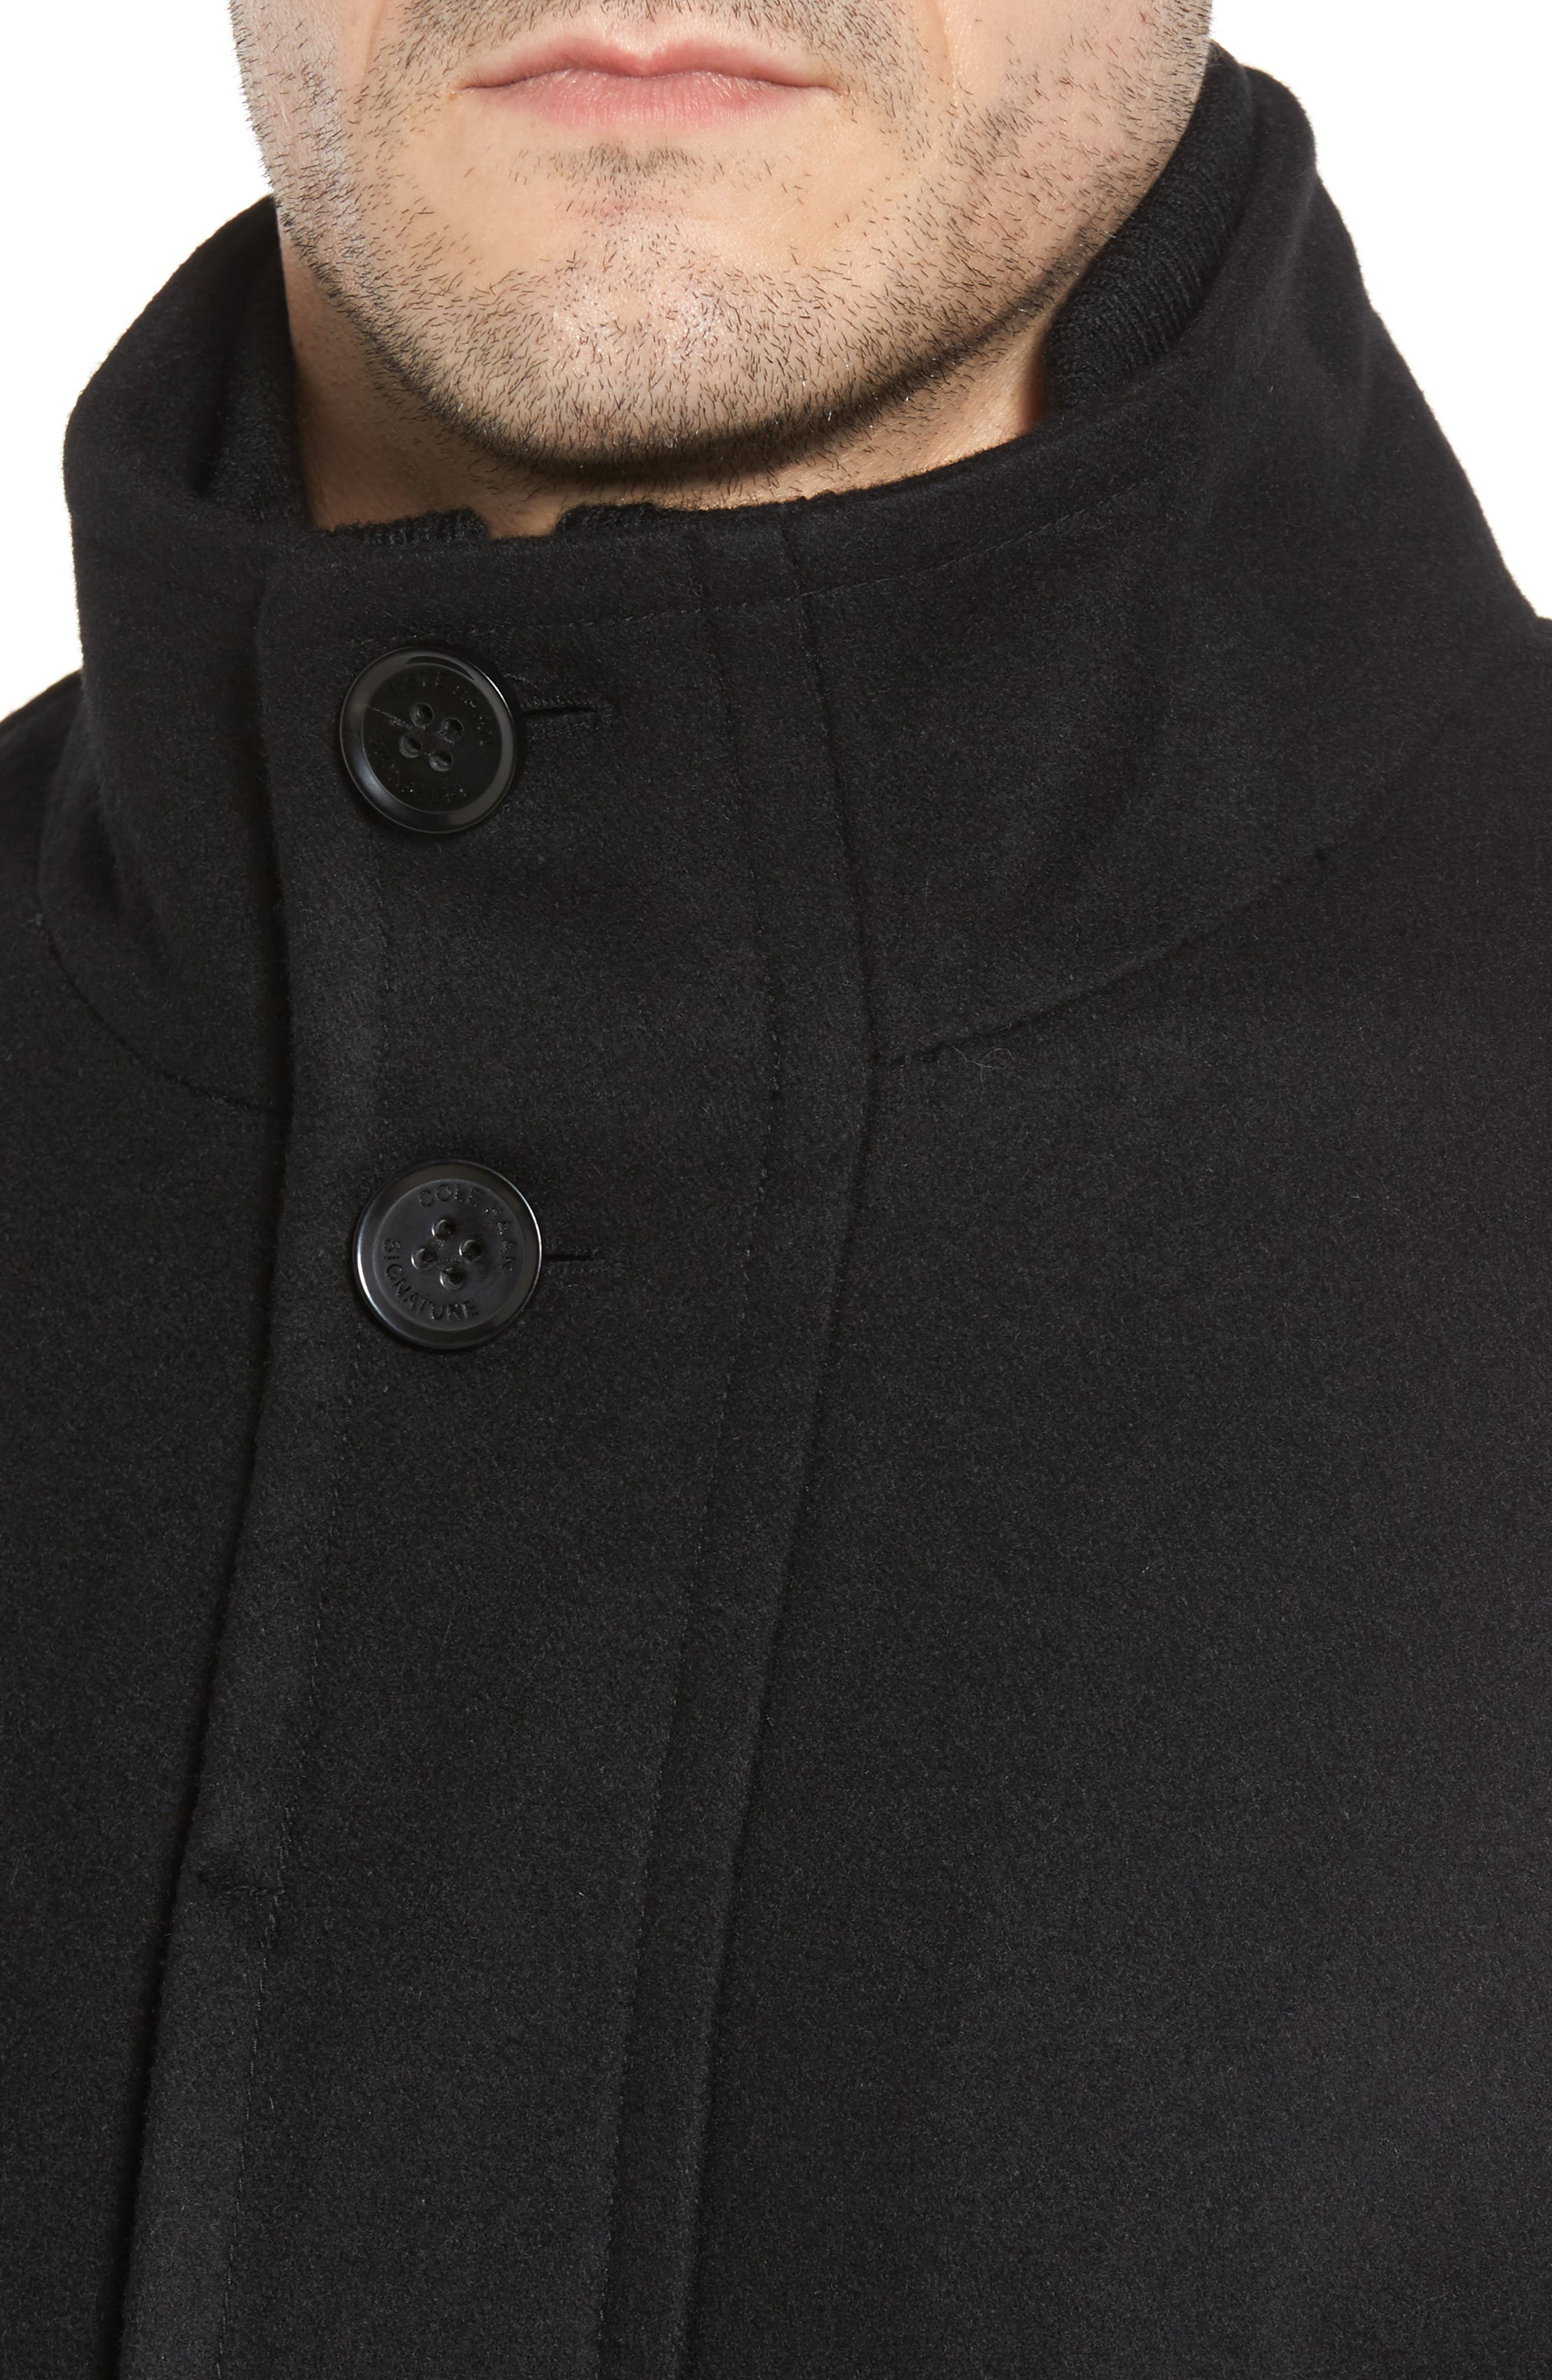 Melton Wool Blend Coat,                             Alternate thumbnail 4, color,                             BLACK